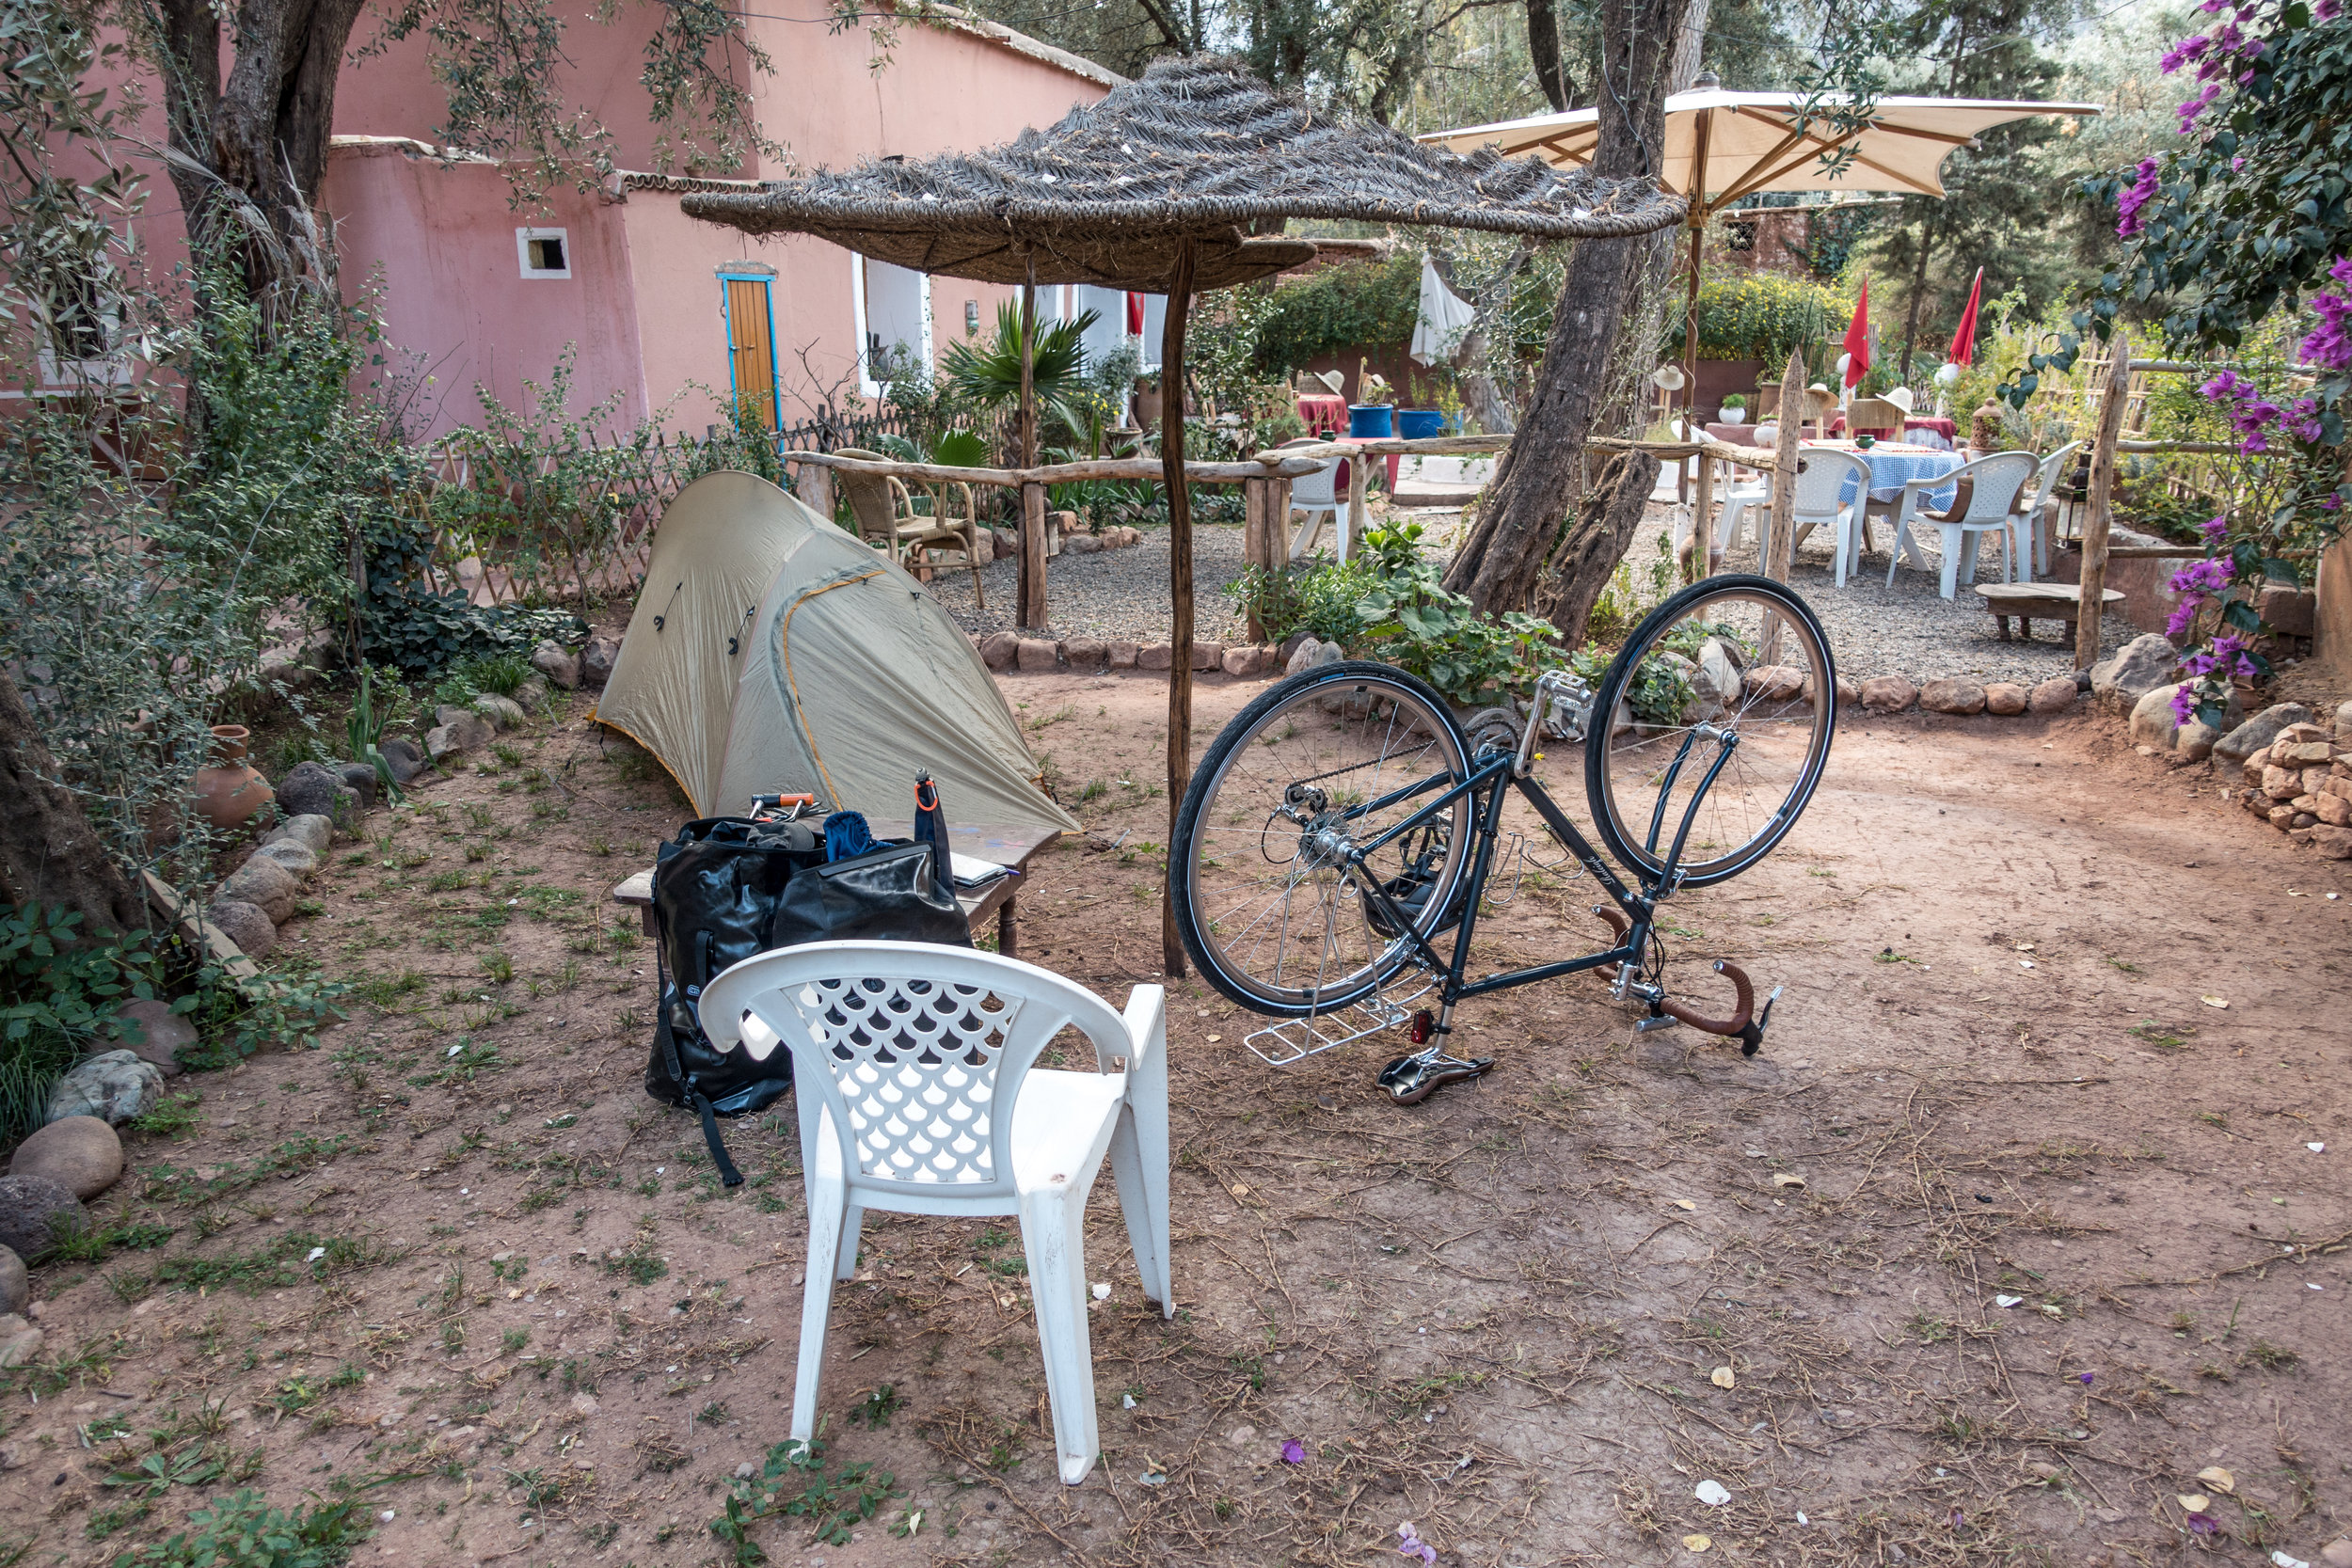 Camping on the lawn of a guesthouse on my very first night of bike travel.